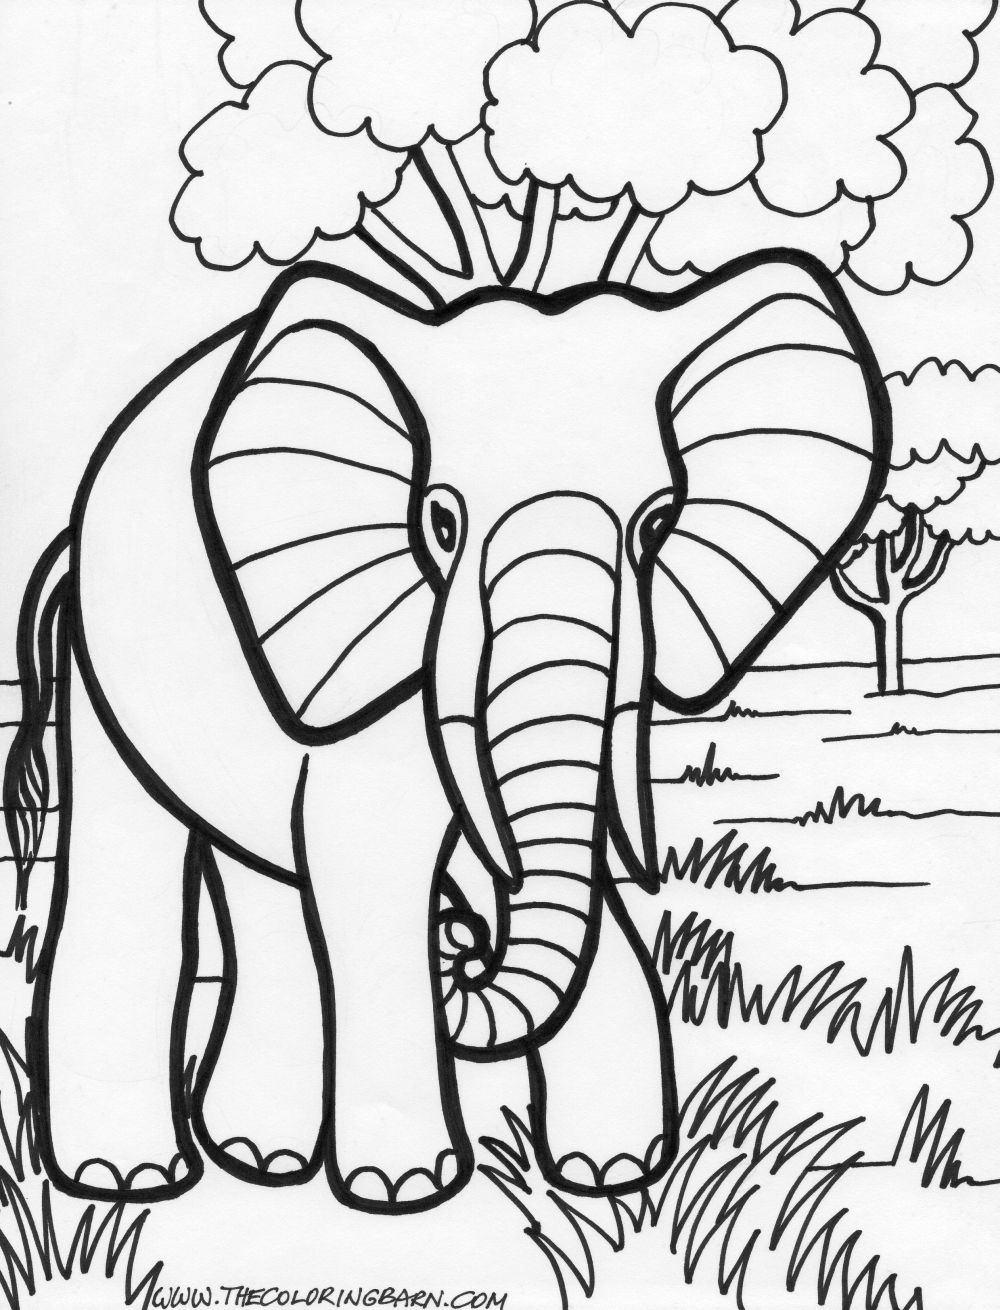 elephant coloring pictures transmissionpress 14 elephant coloring pages for kids pictures coloring elephant